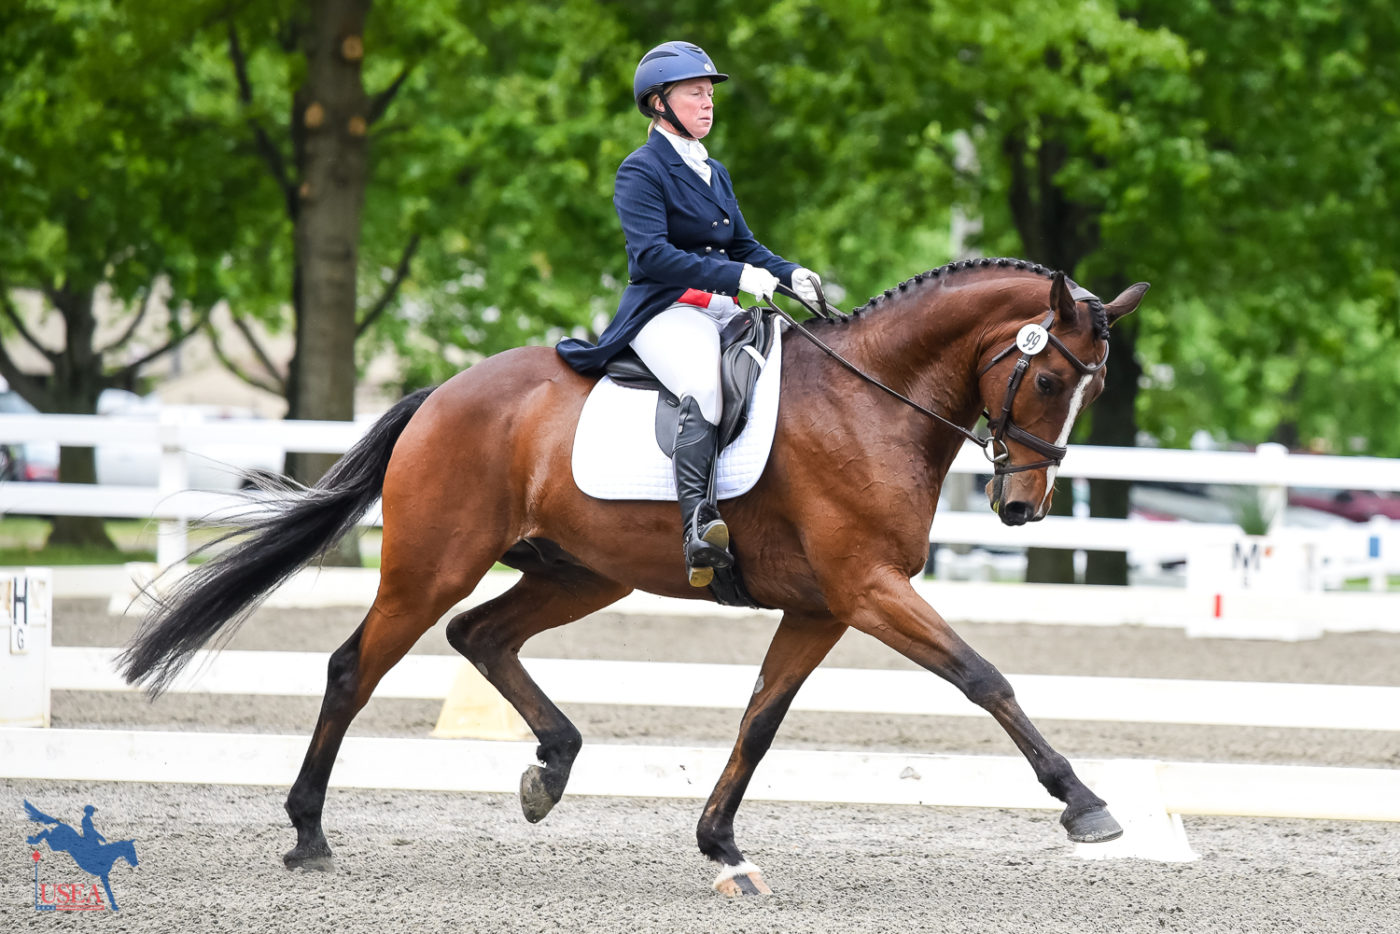 7th - Colleen Rutledge and Covert Rights - 35.1